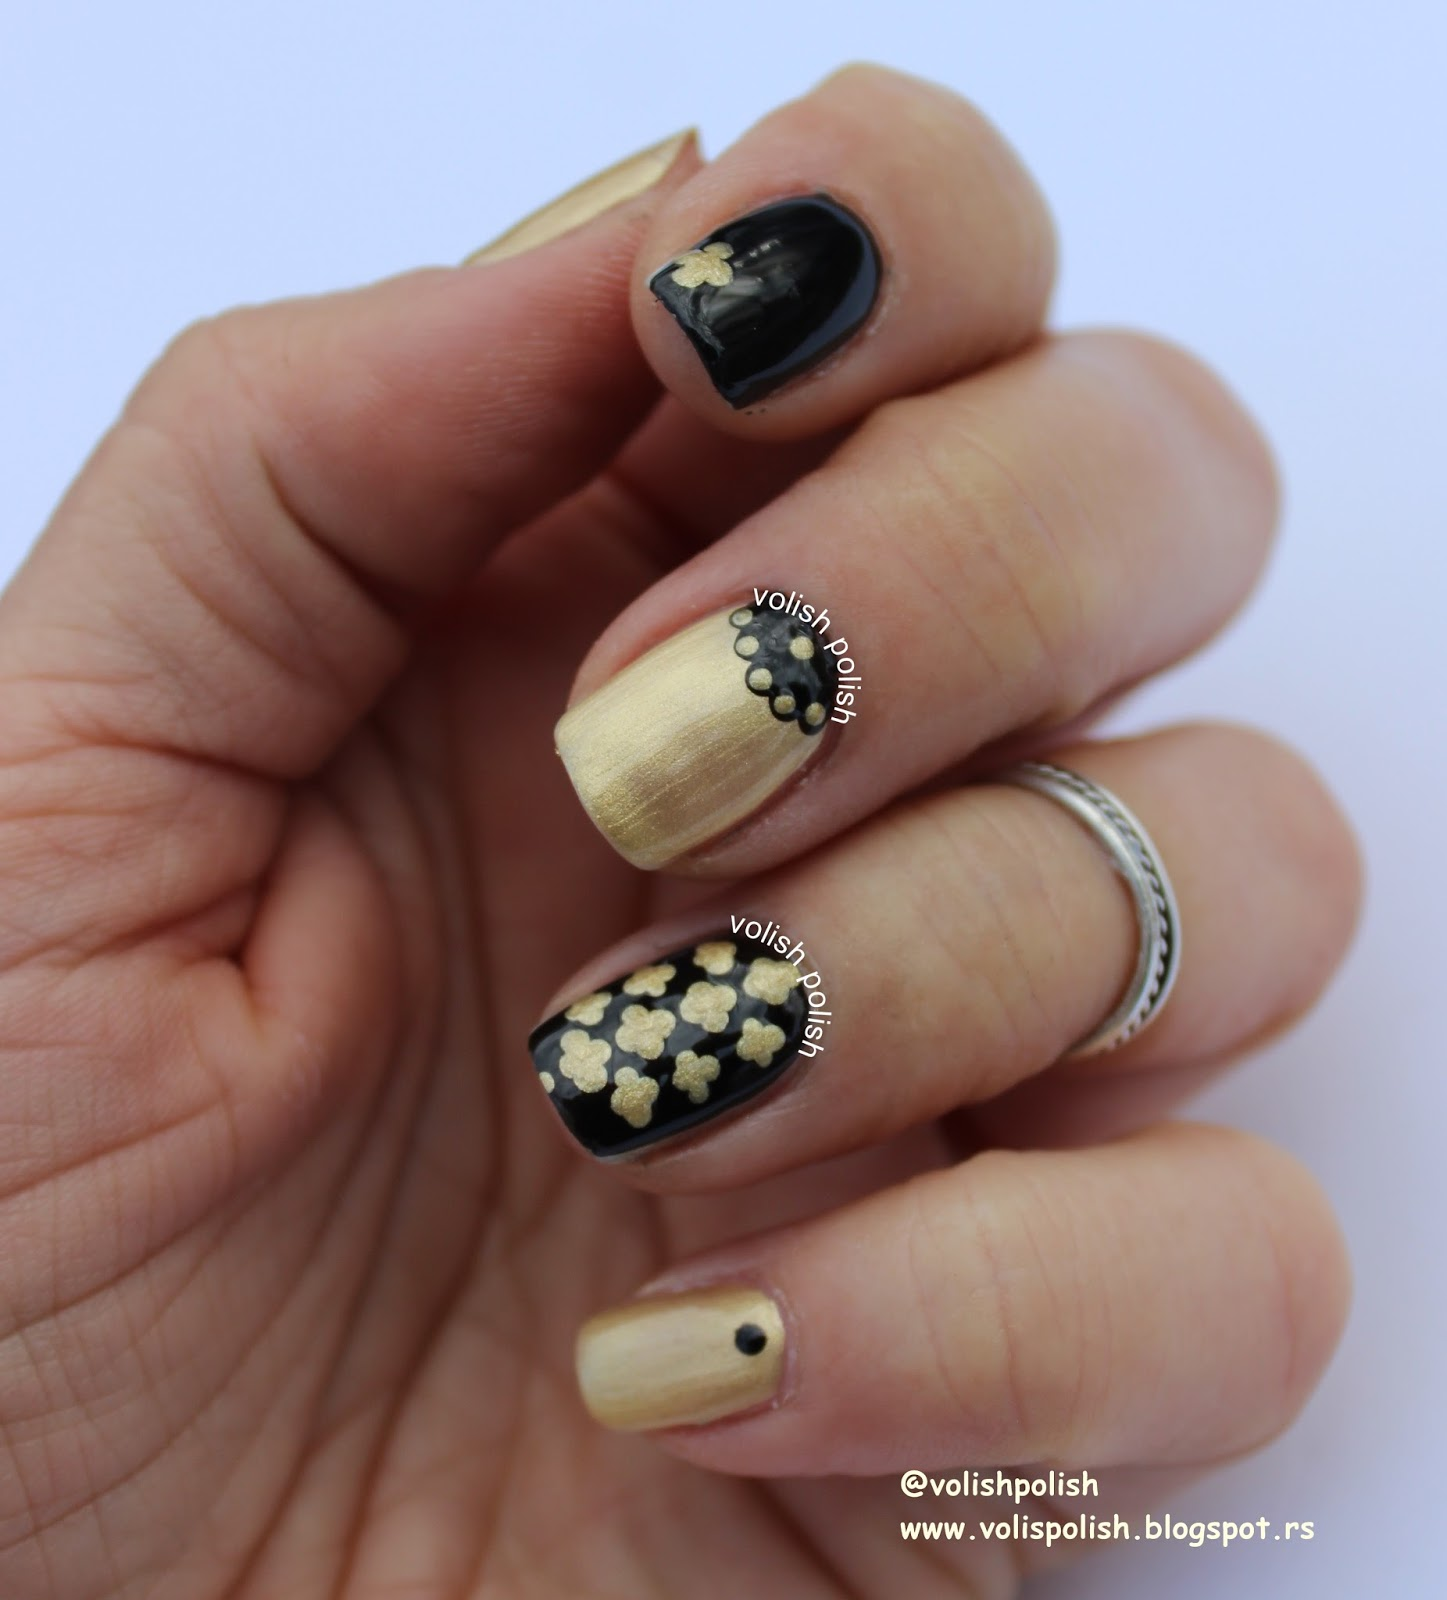 NAIL ART – Page 2 – volishpolish